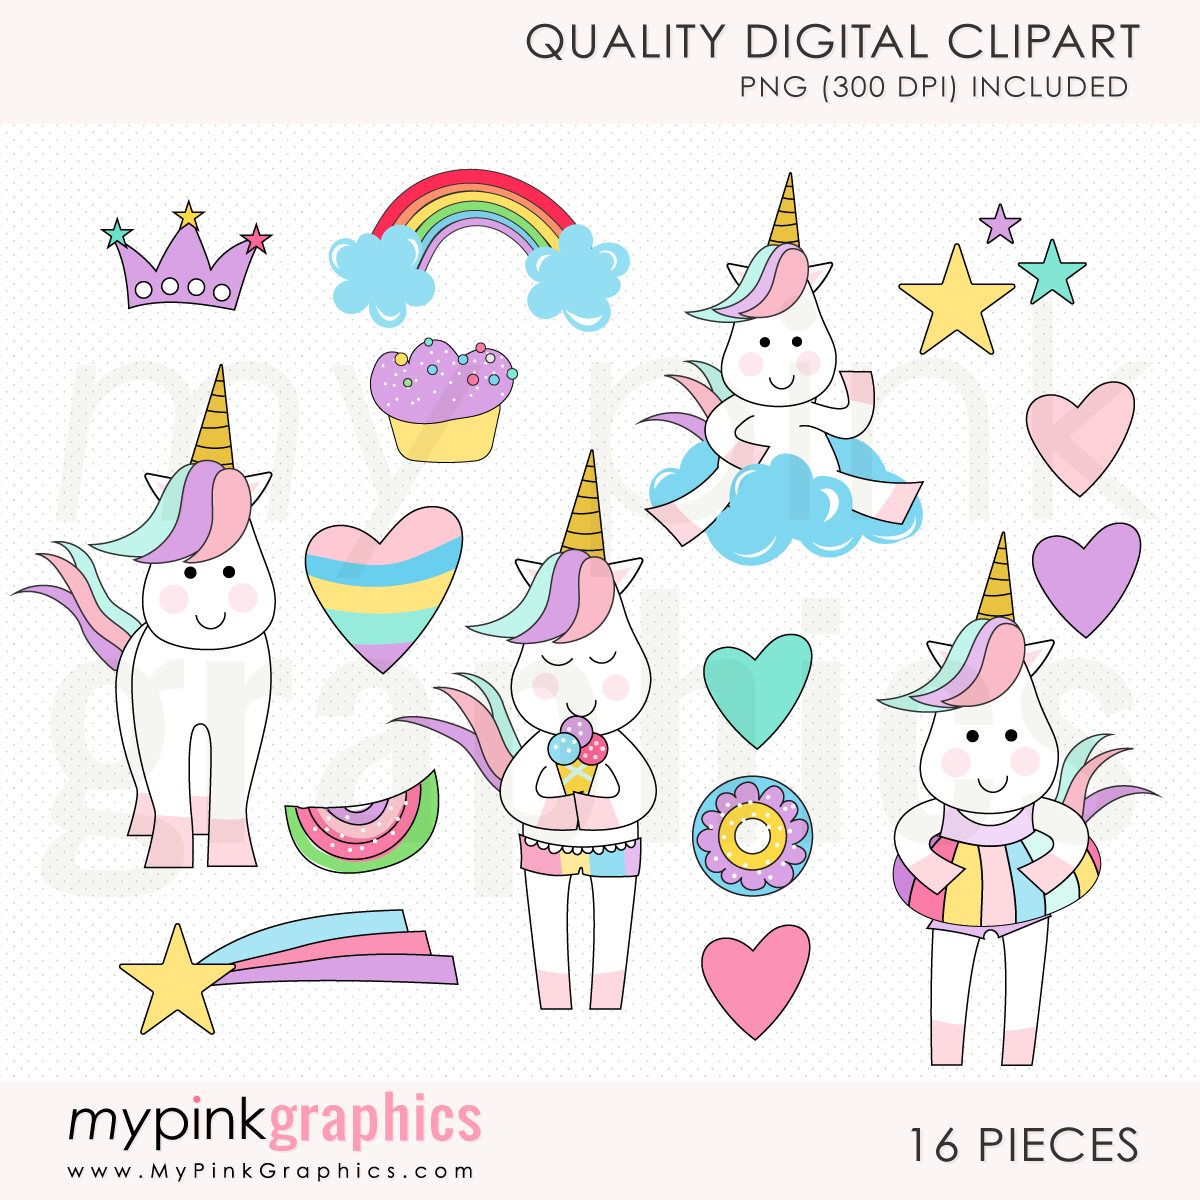 Addition clipart cute. Excited to share the